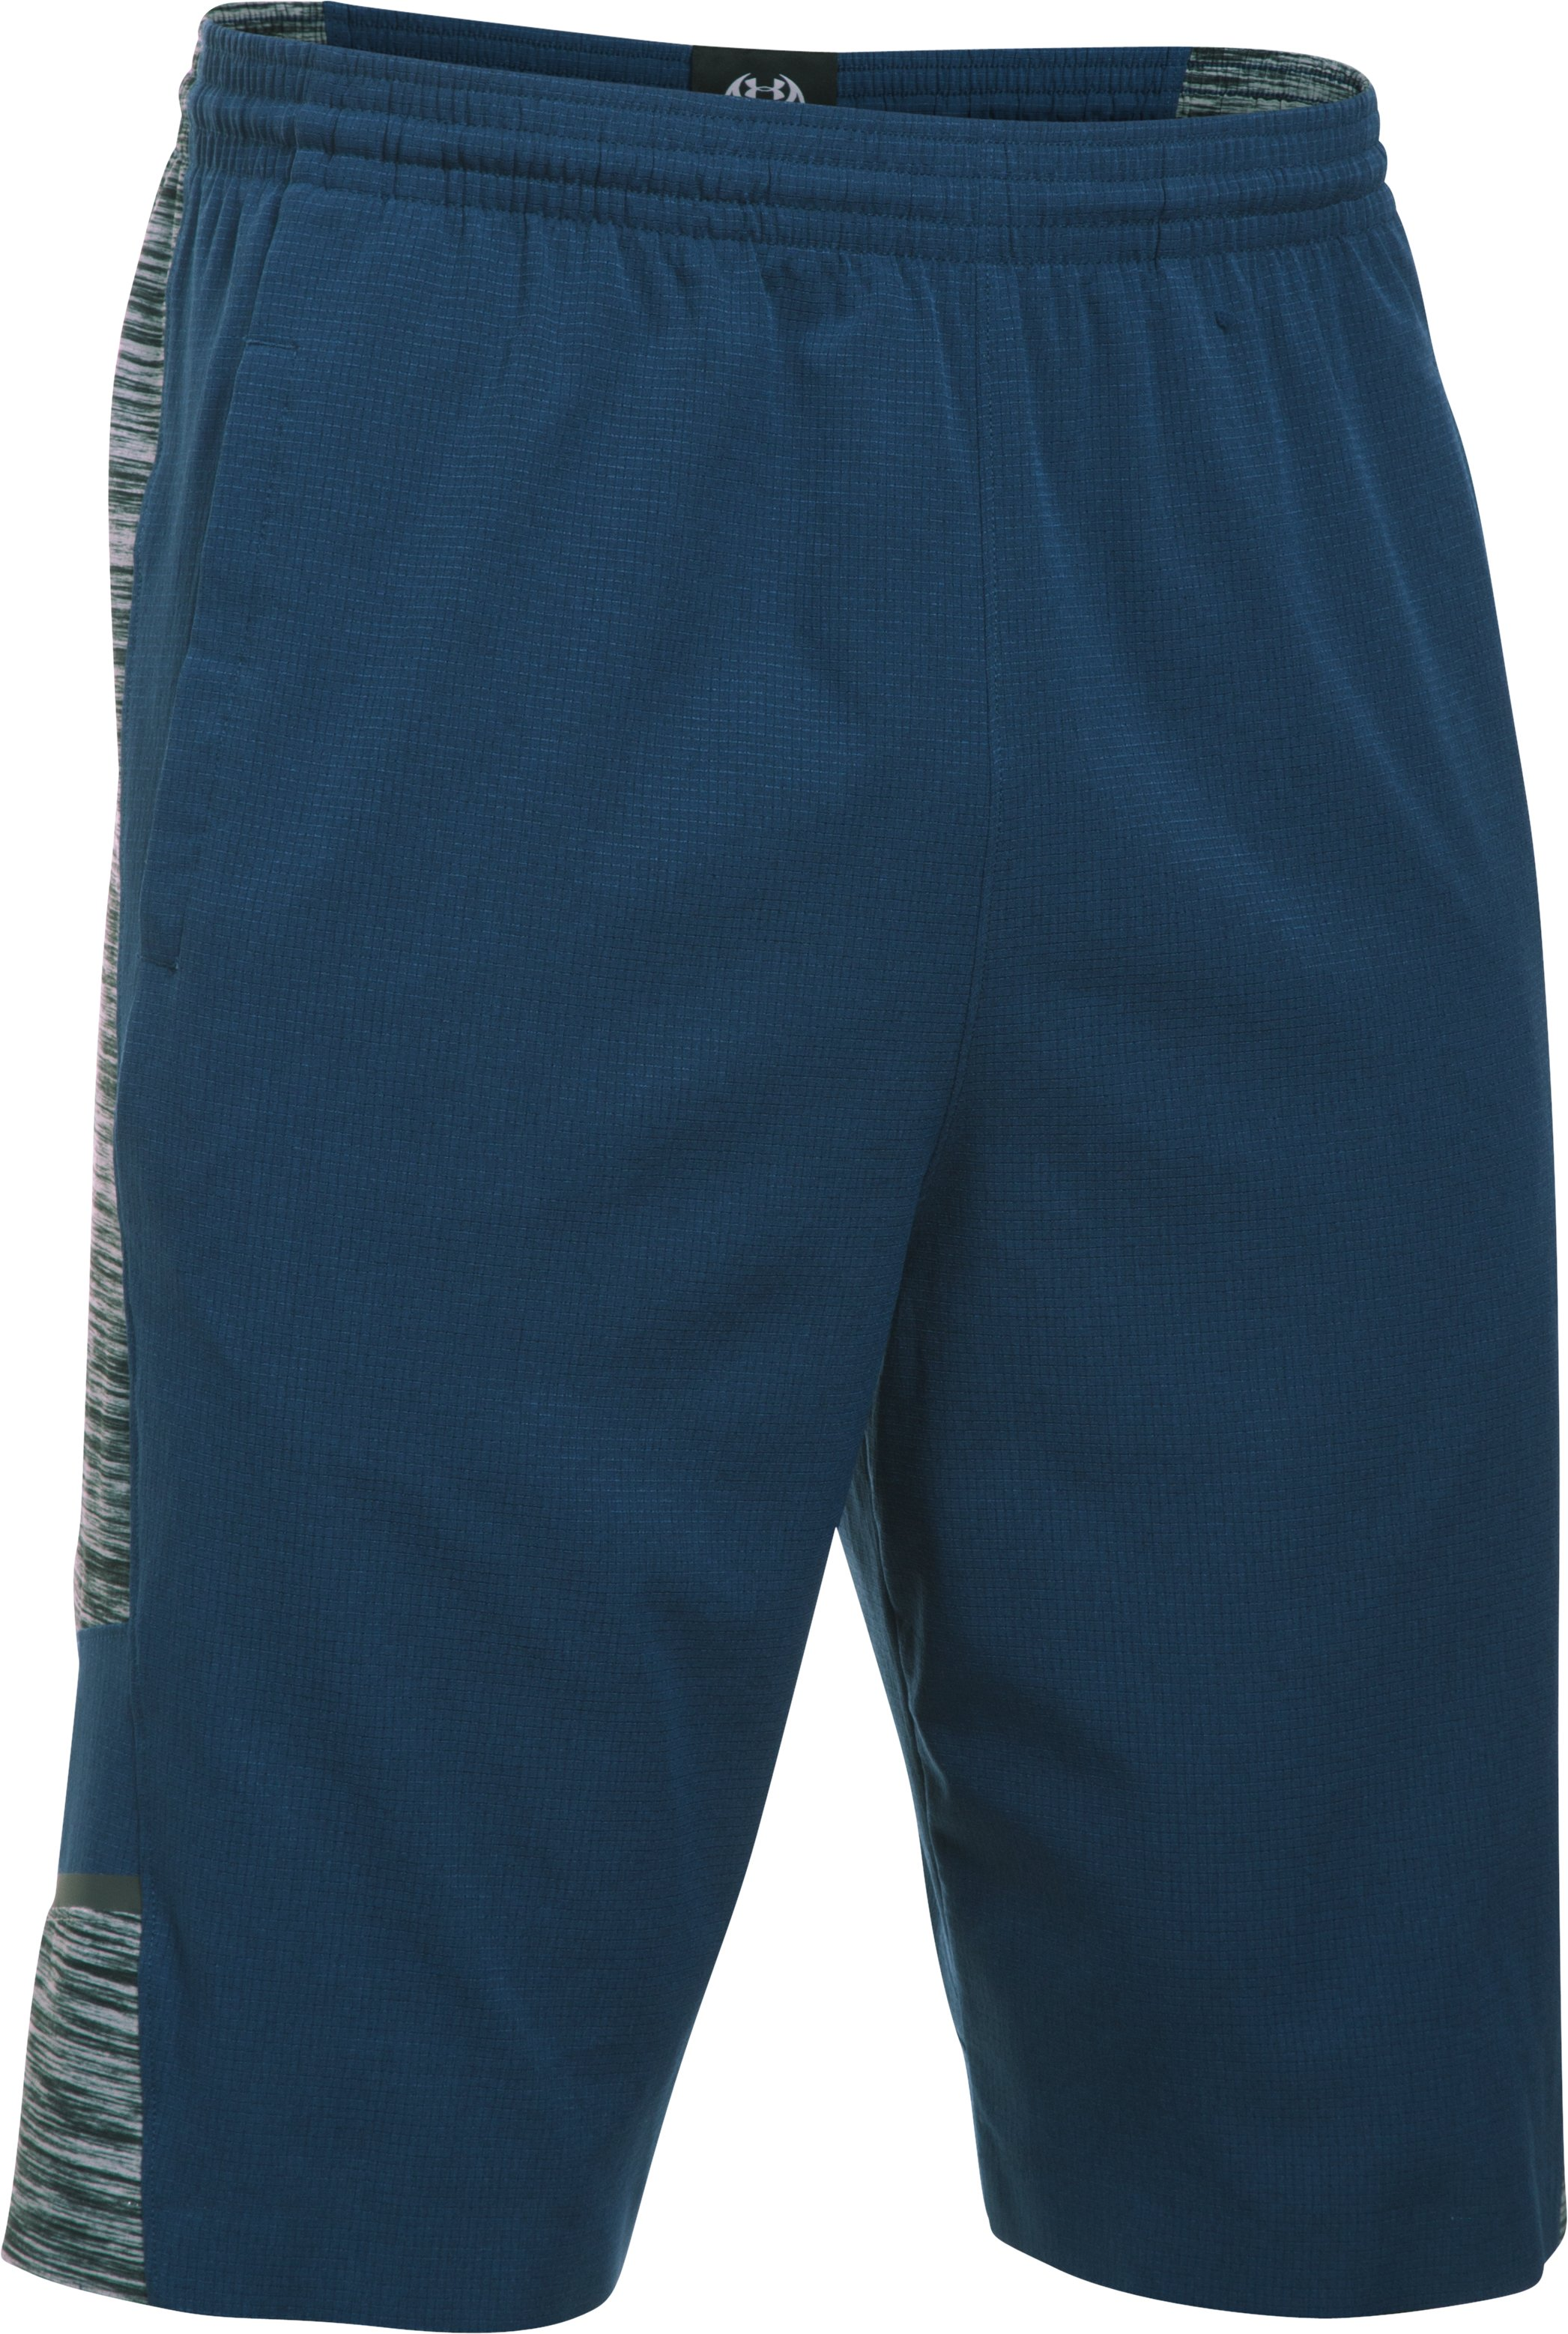 Men's UA CoolSwitch Basketball Shorts, BLACKOUT NAVY, undefined